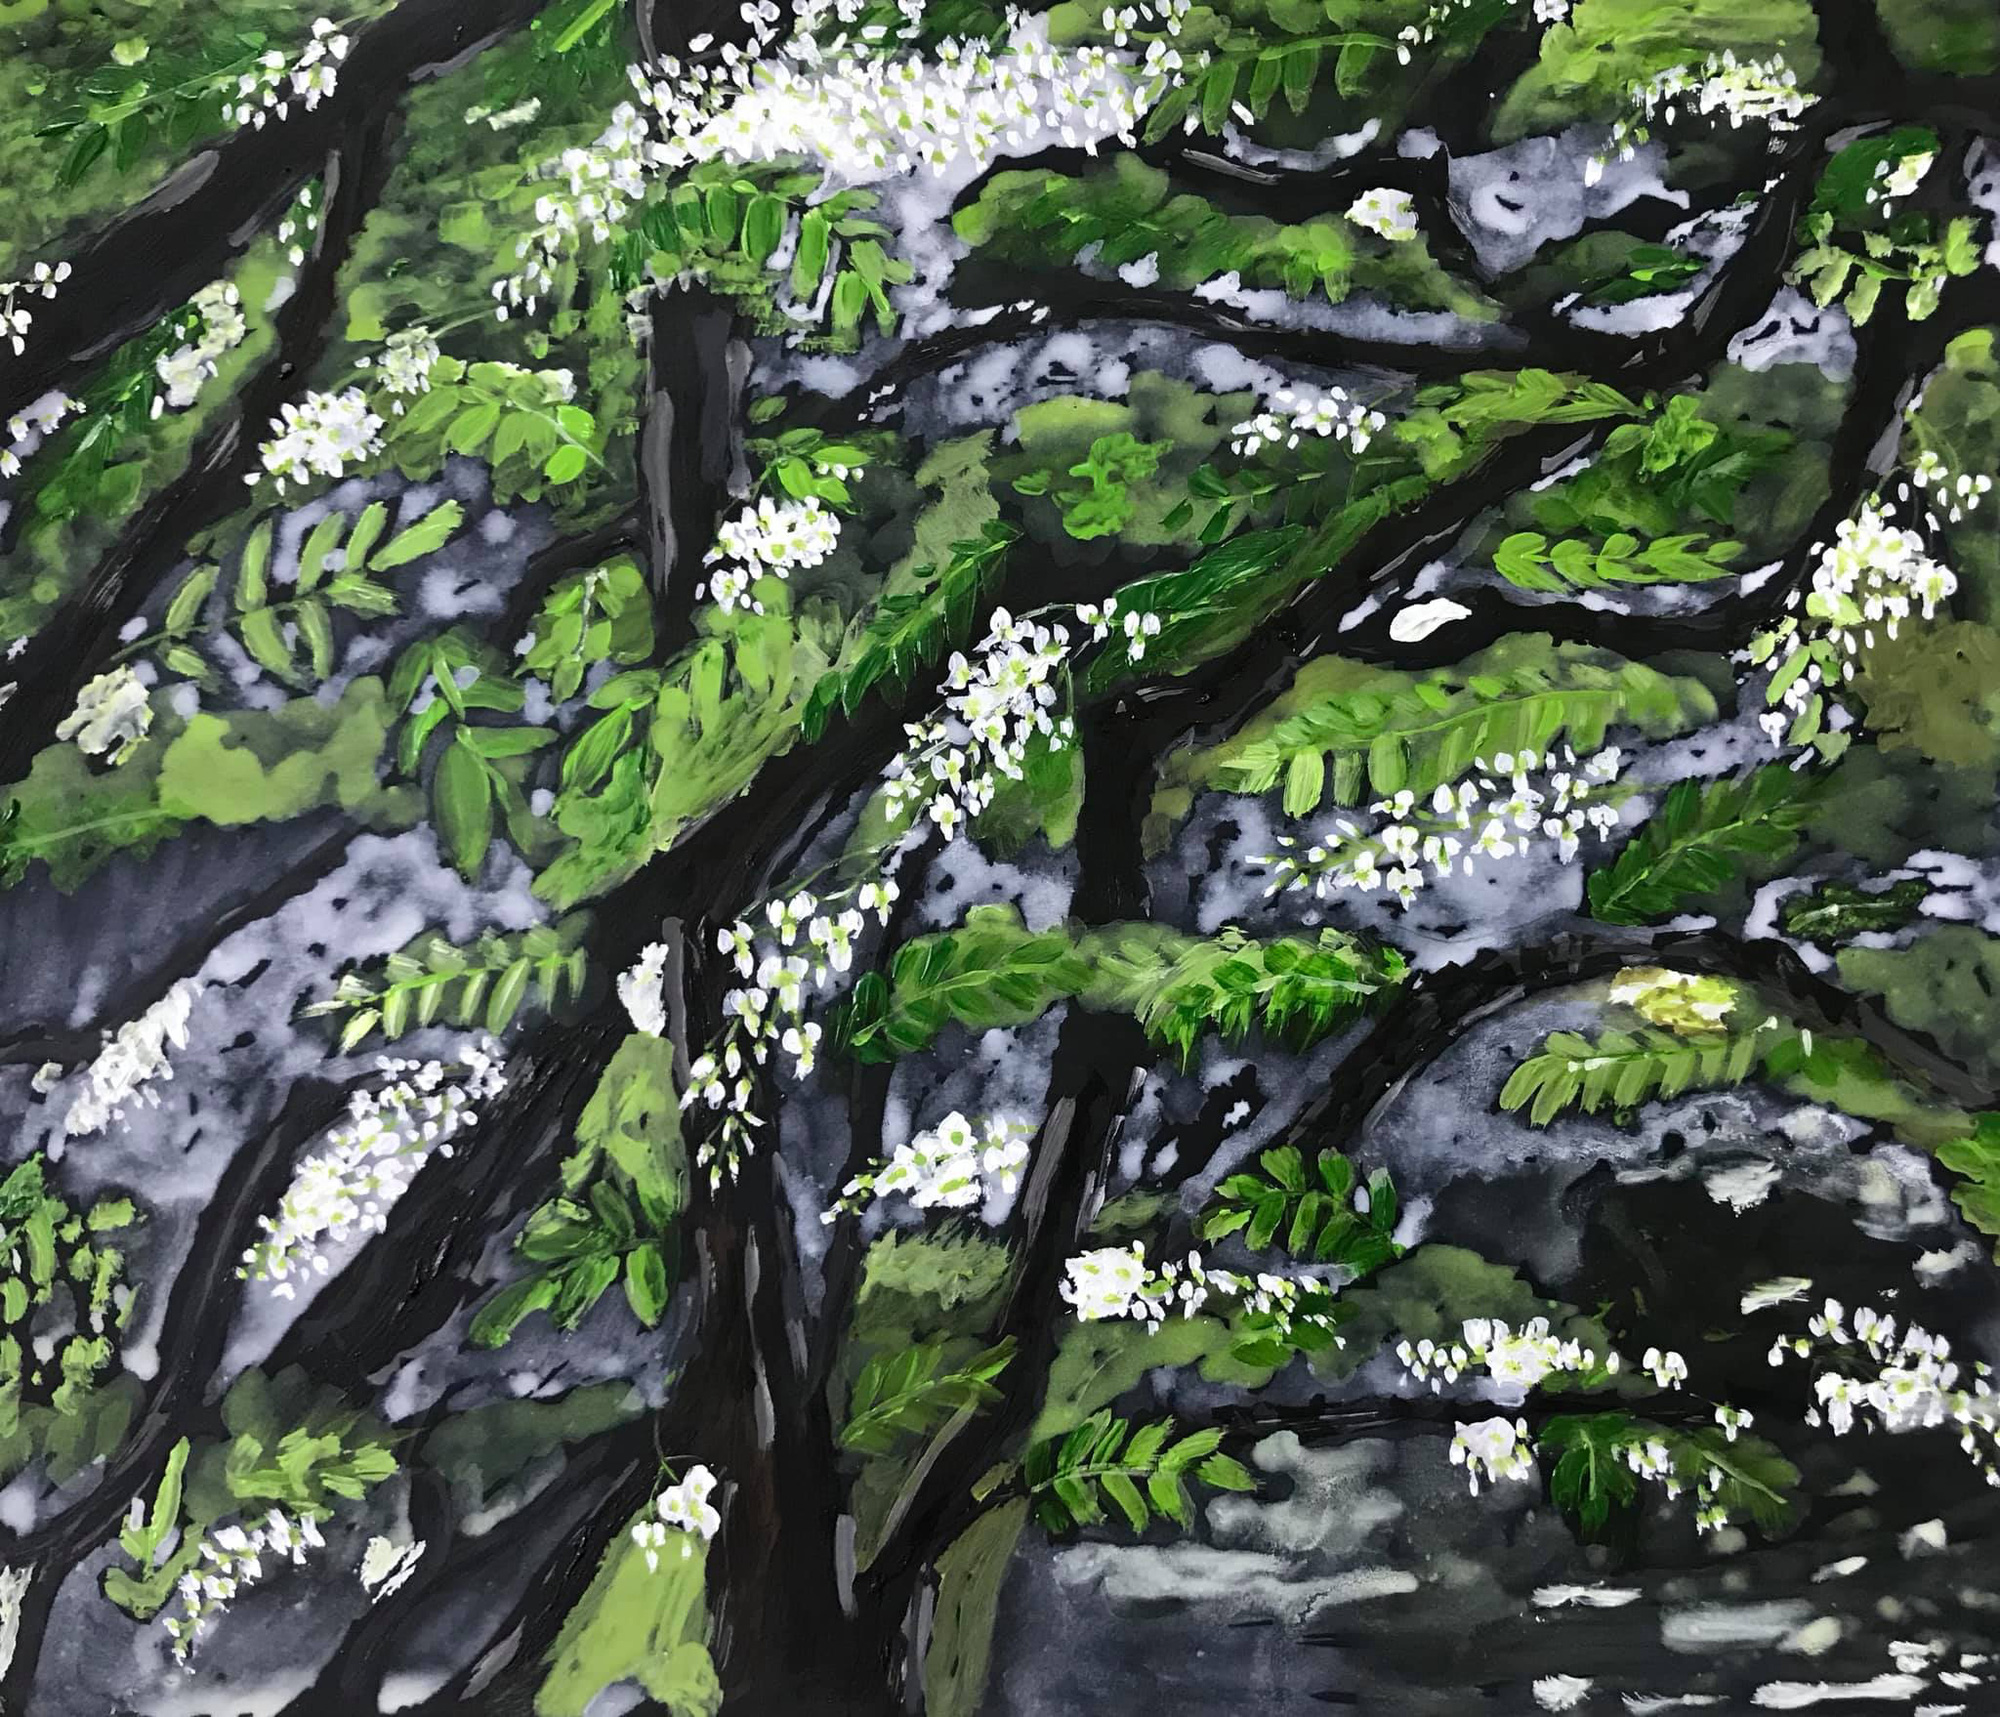 Blackboard tree blossoms are seen in this sketch by Sao Nguyen.